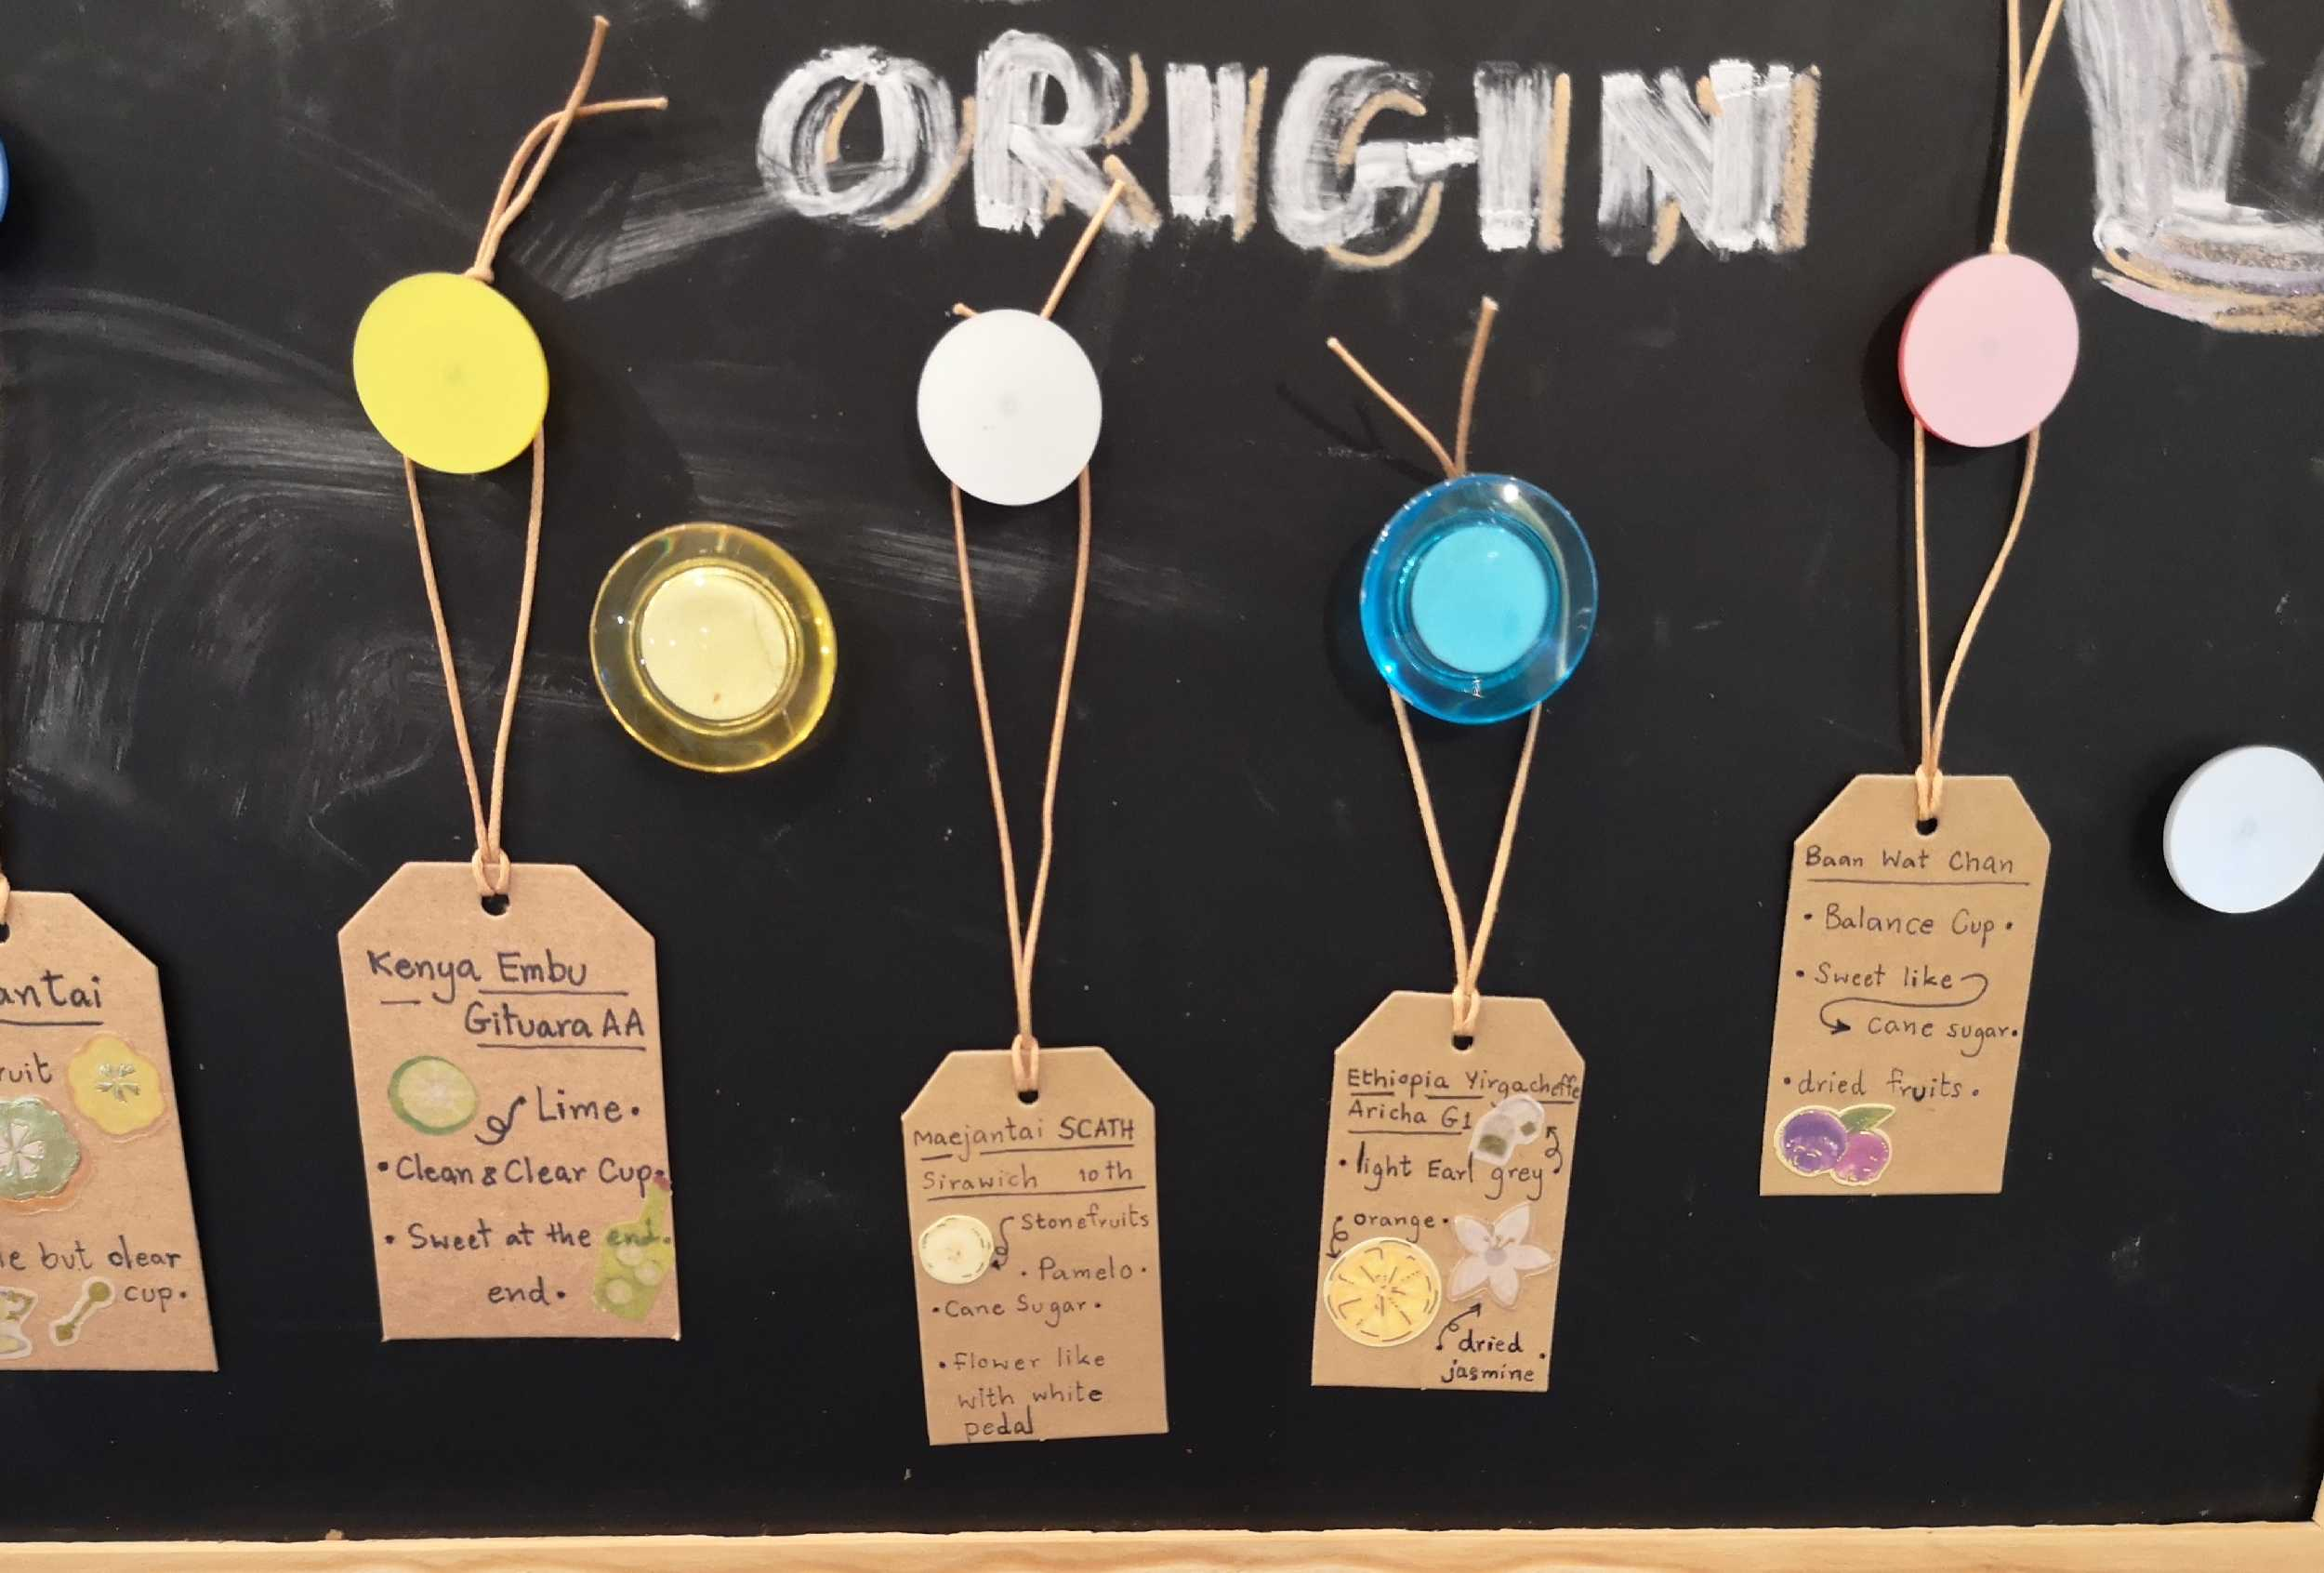 Tags showing the origins and flavor notes of each bean.